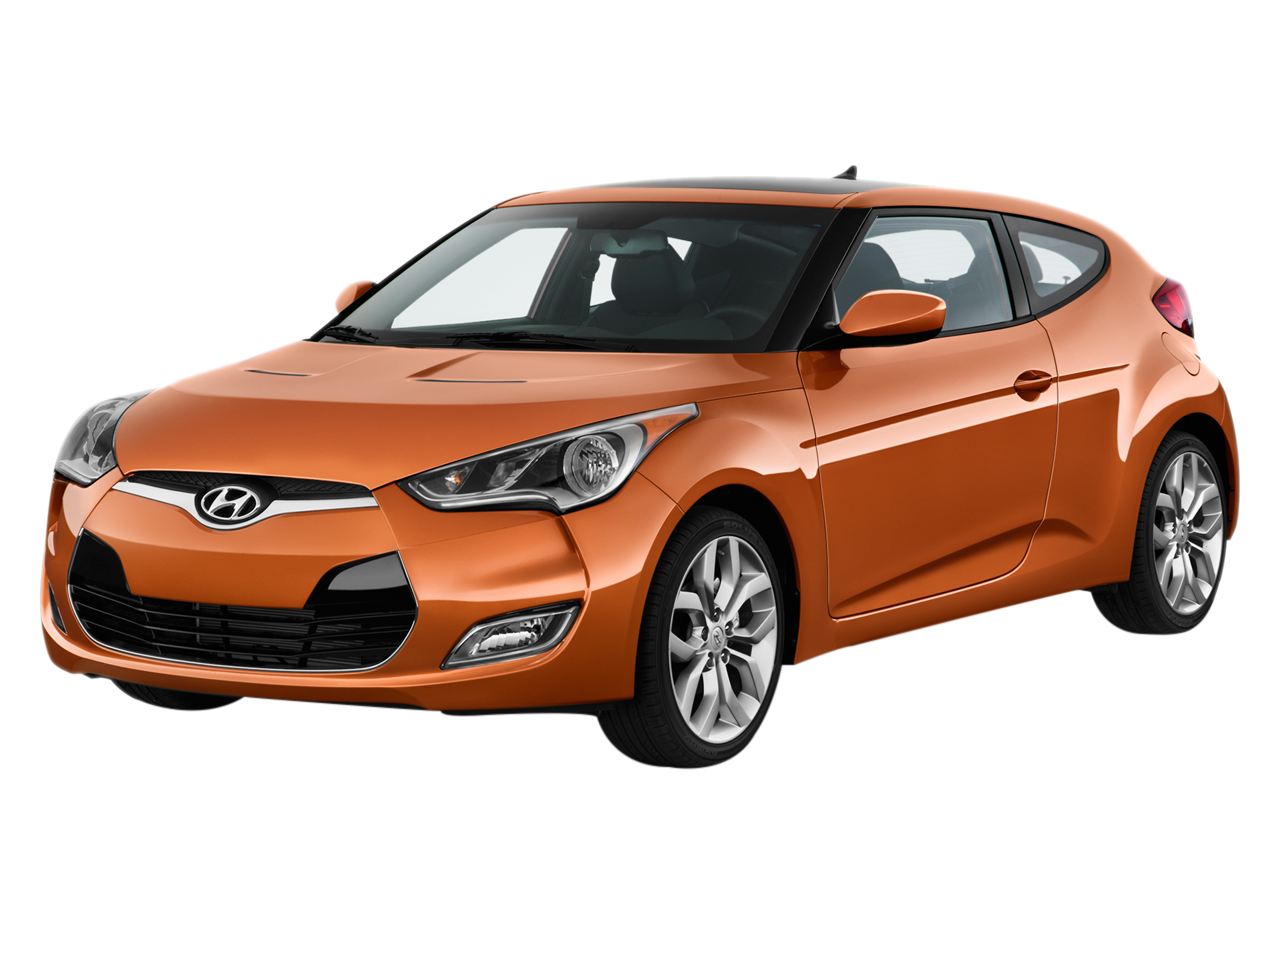 hyundai car models and prices 30 cool hd wallpaper. Black Bedroom Furniture Sets. Home Design Ideas